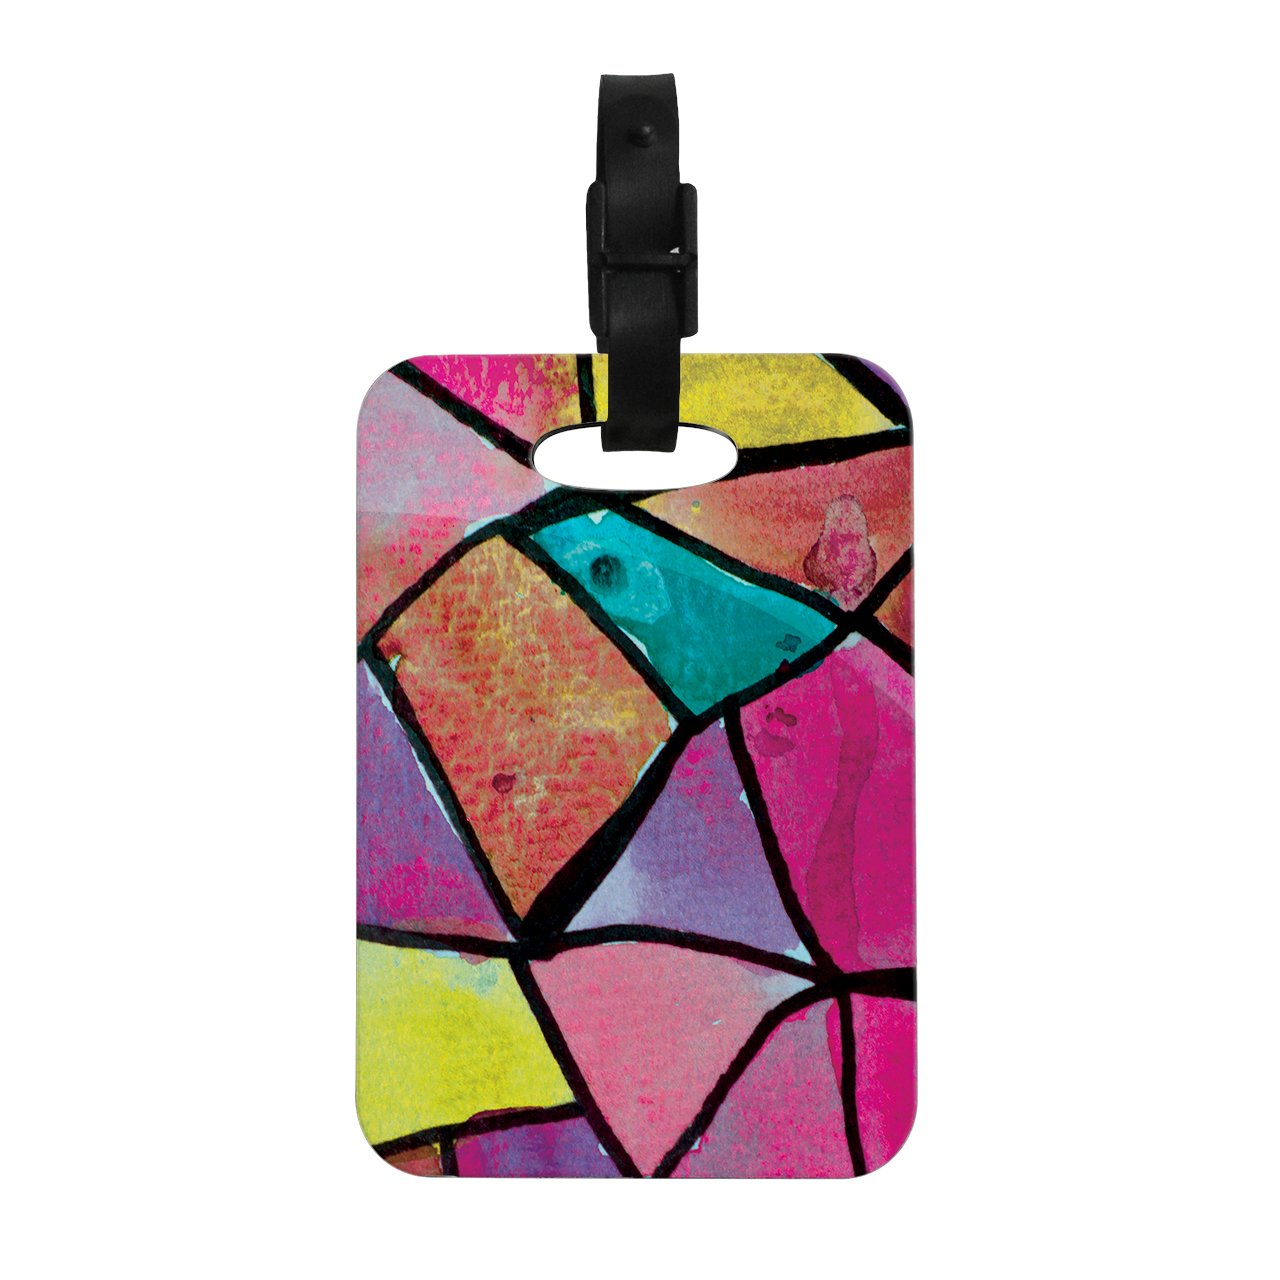 Kess InHouse Theresa Giolzetti Stain Glass 3'' Decorative Luggage Tag, 4 by 4-Inch